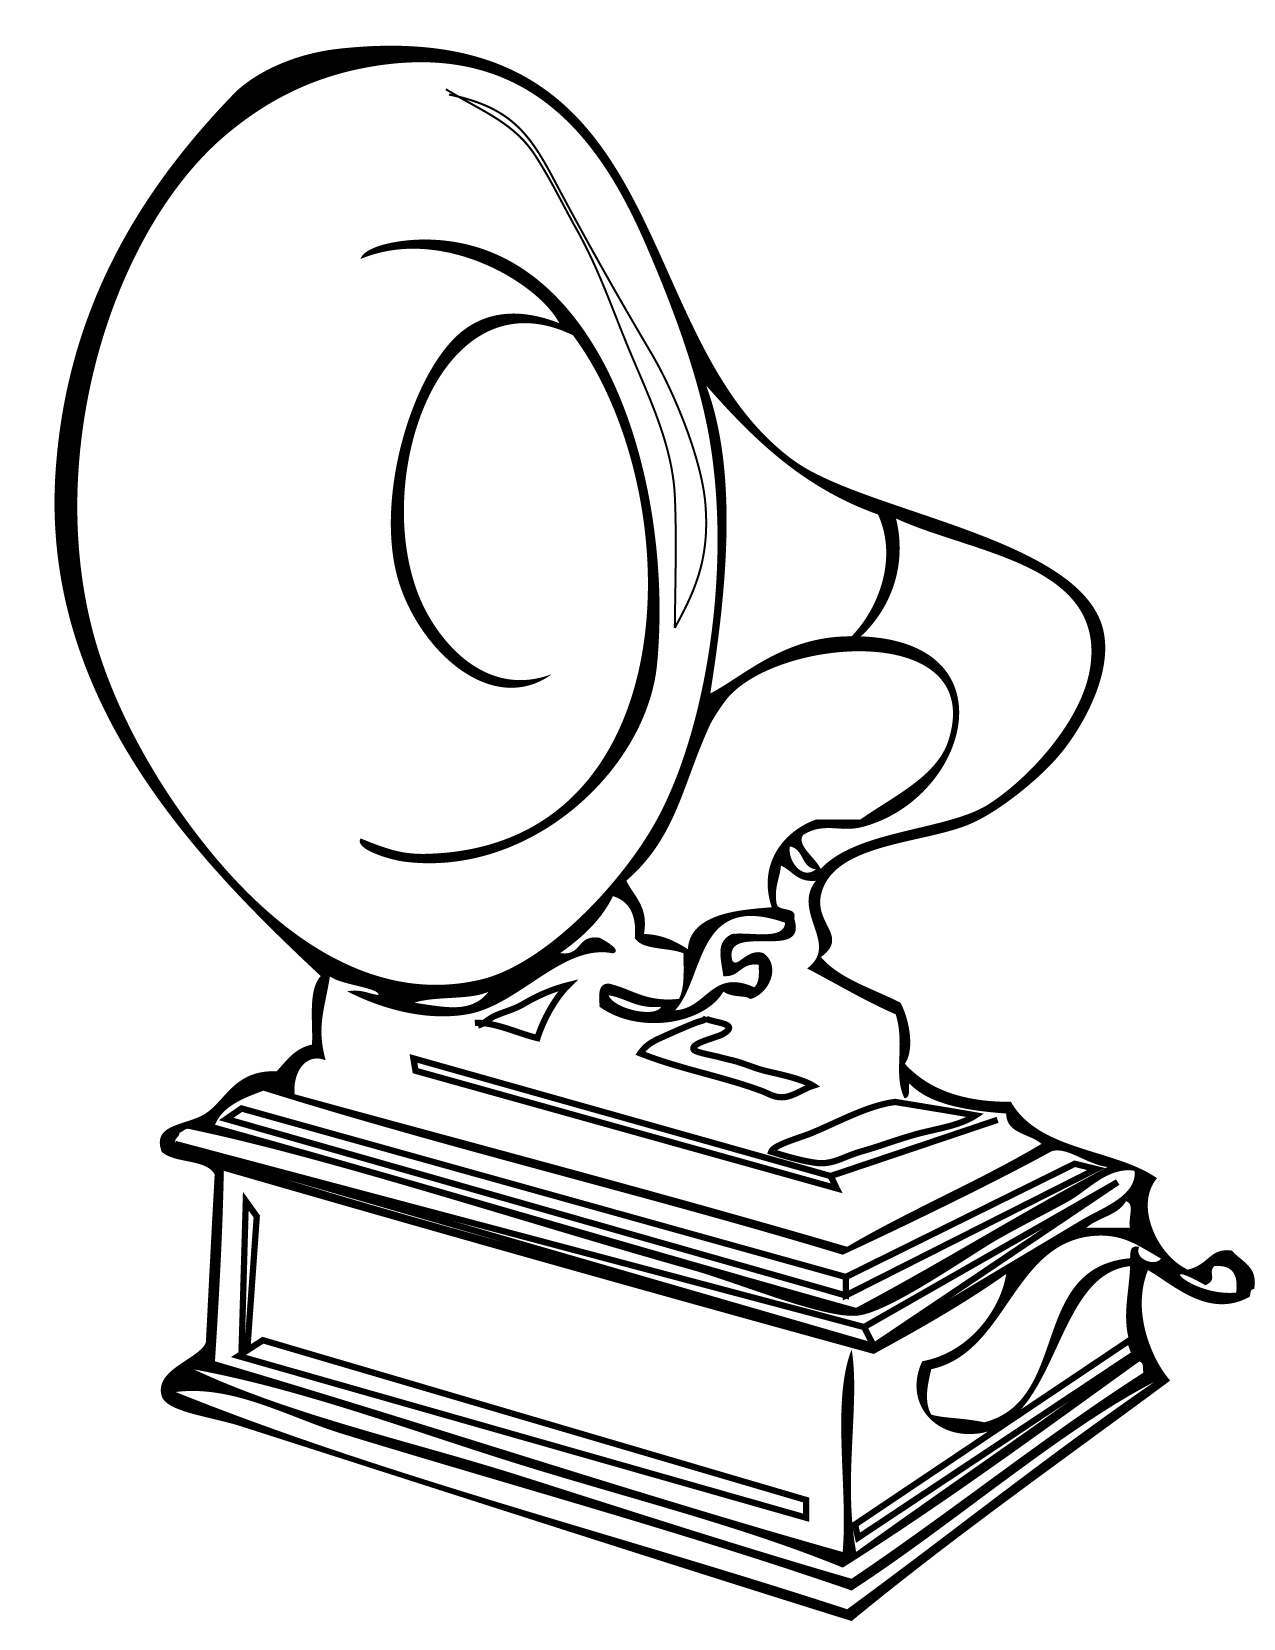 Record Player Coloring Page Coloring Pages